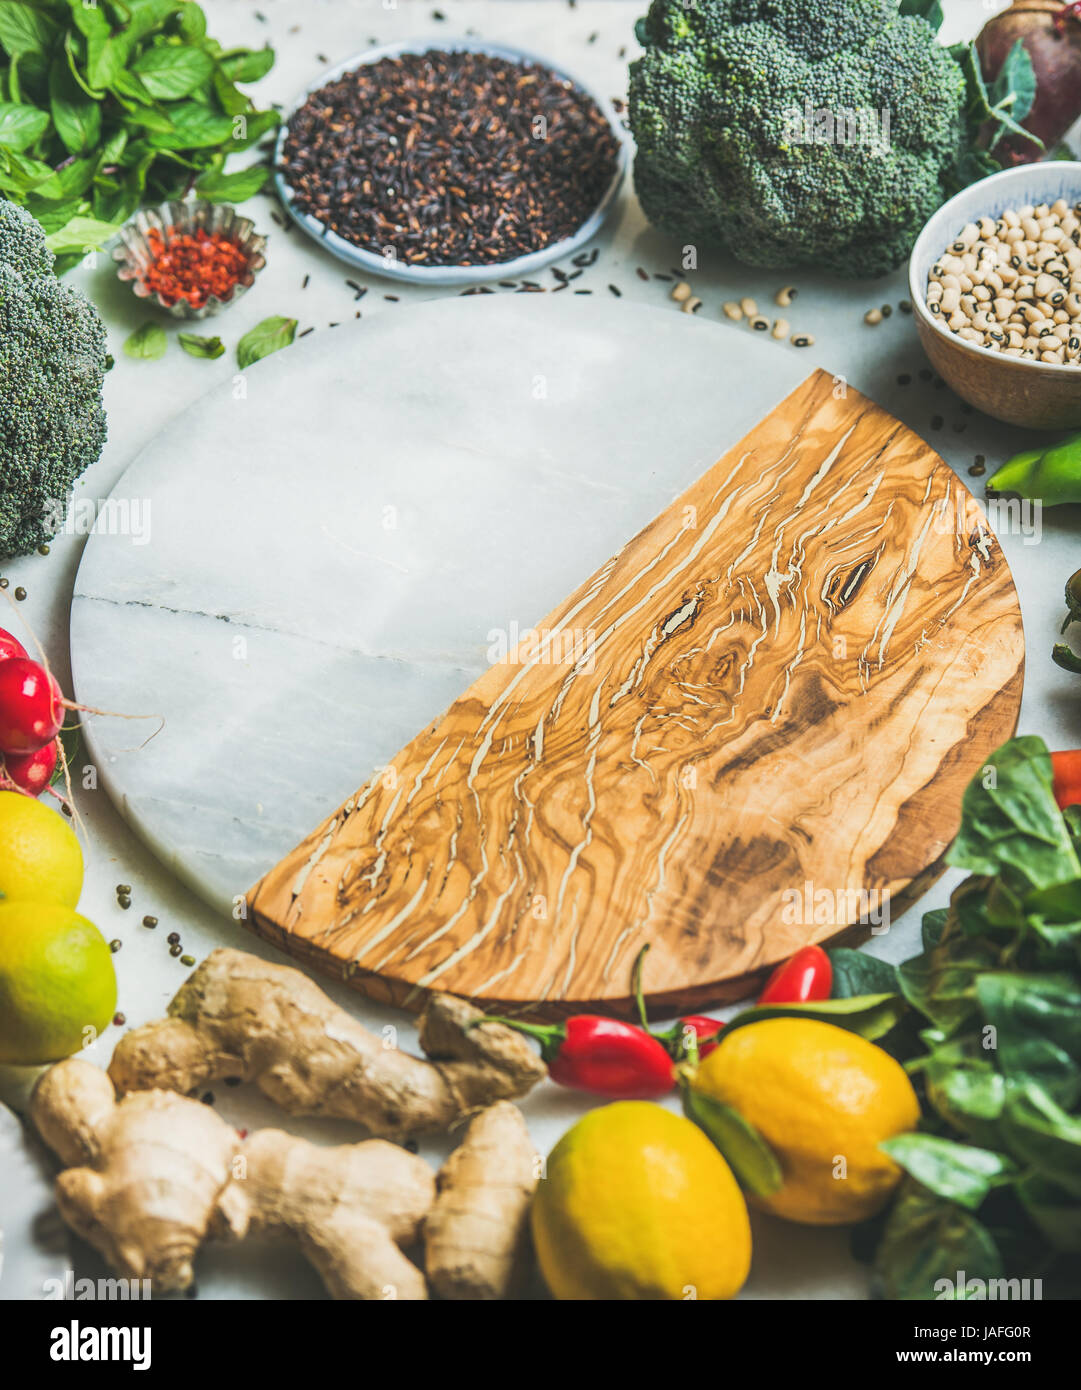 Clean eating healthy cooking ingredients. Vegetables, beans, grains, greens, fruit, spices over grey background, - Stock Image